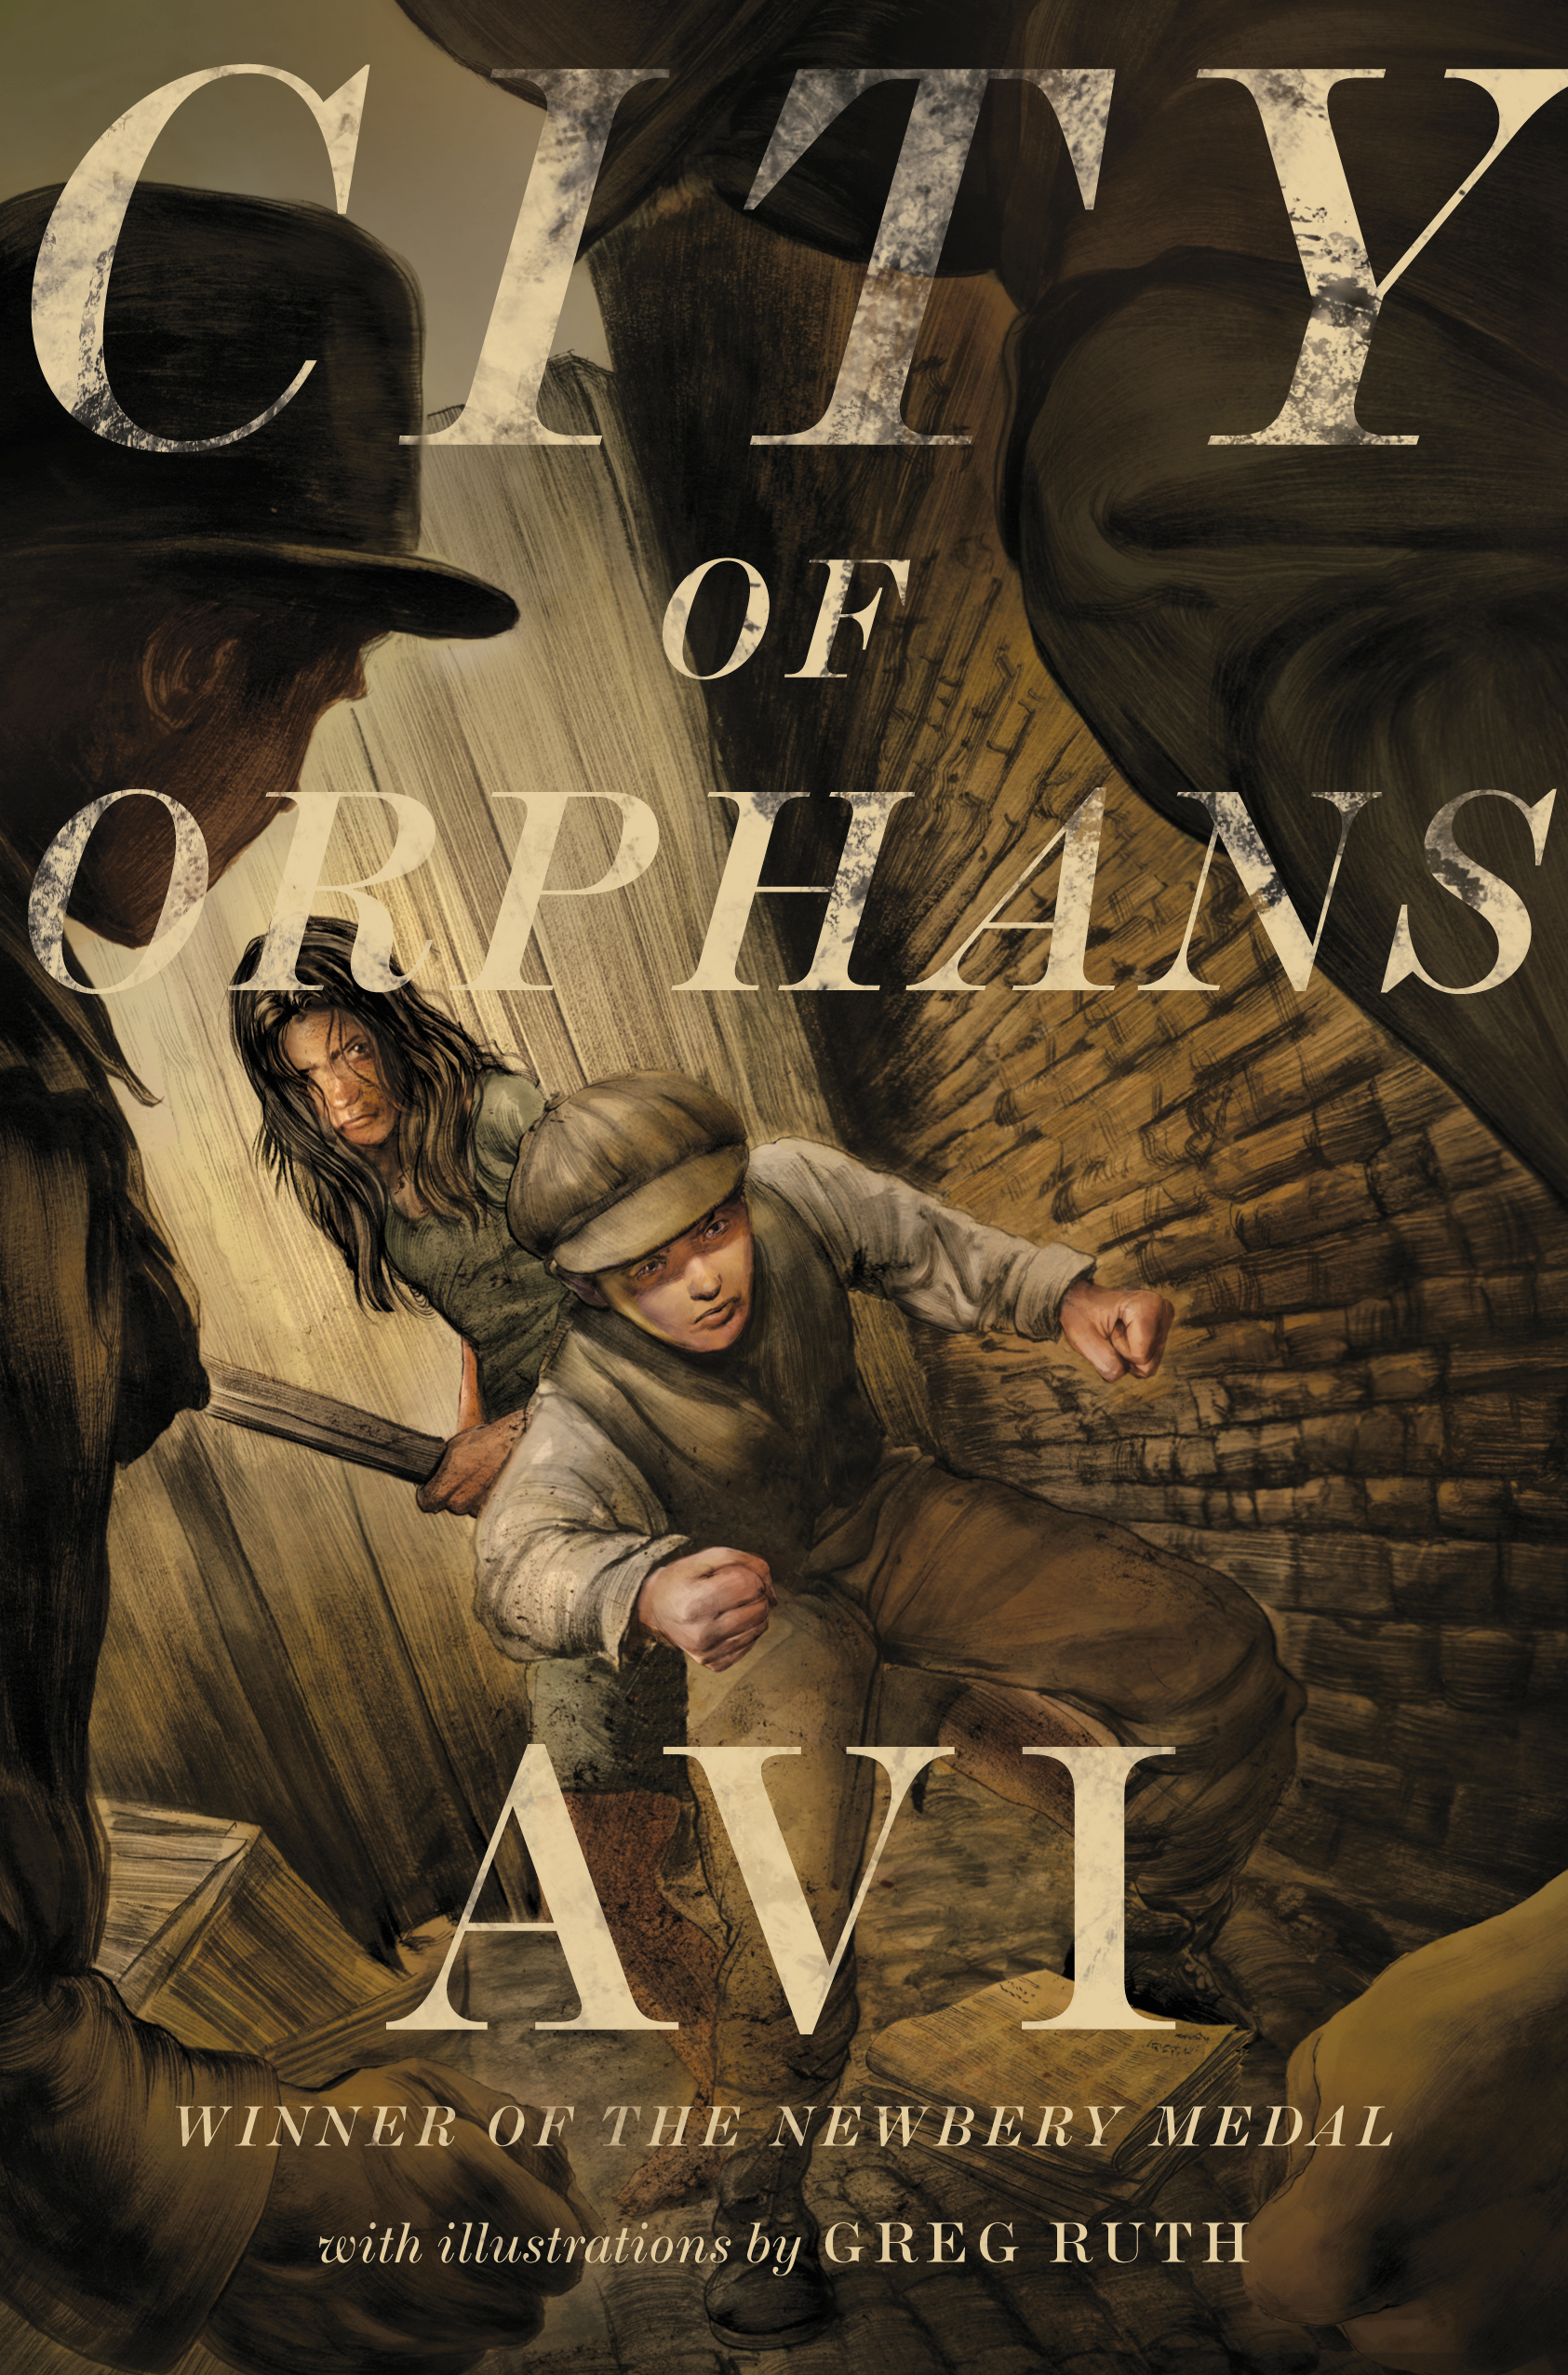 City of orphans book by avi greg ruth official publisher page cvr9781416971023 9781416971023 hr fandeluxe Images